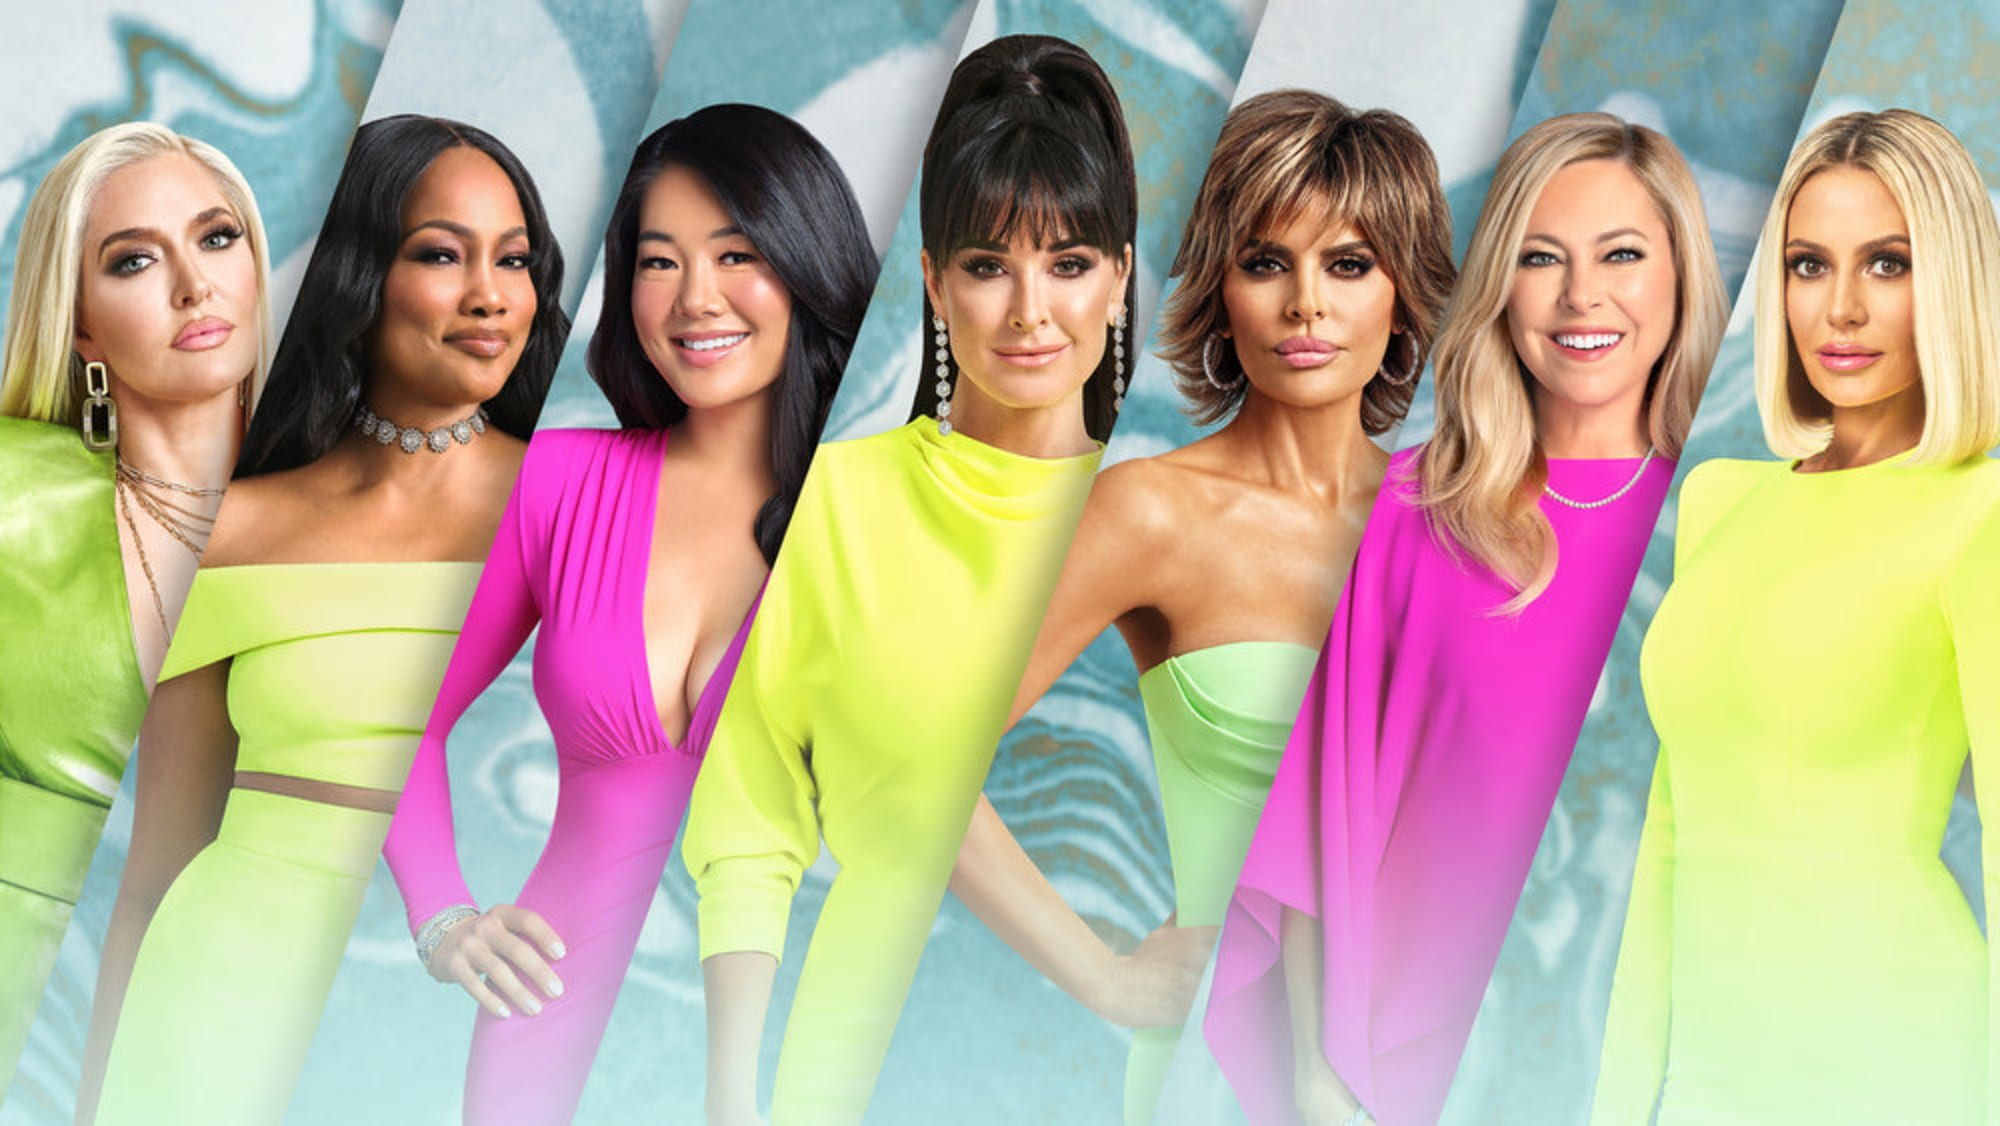 Real Housewives of Beverly Hills officially premiering on May 19